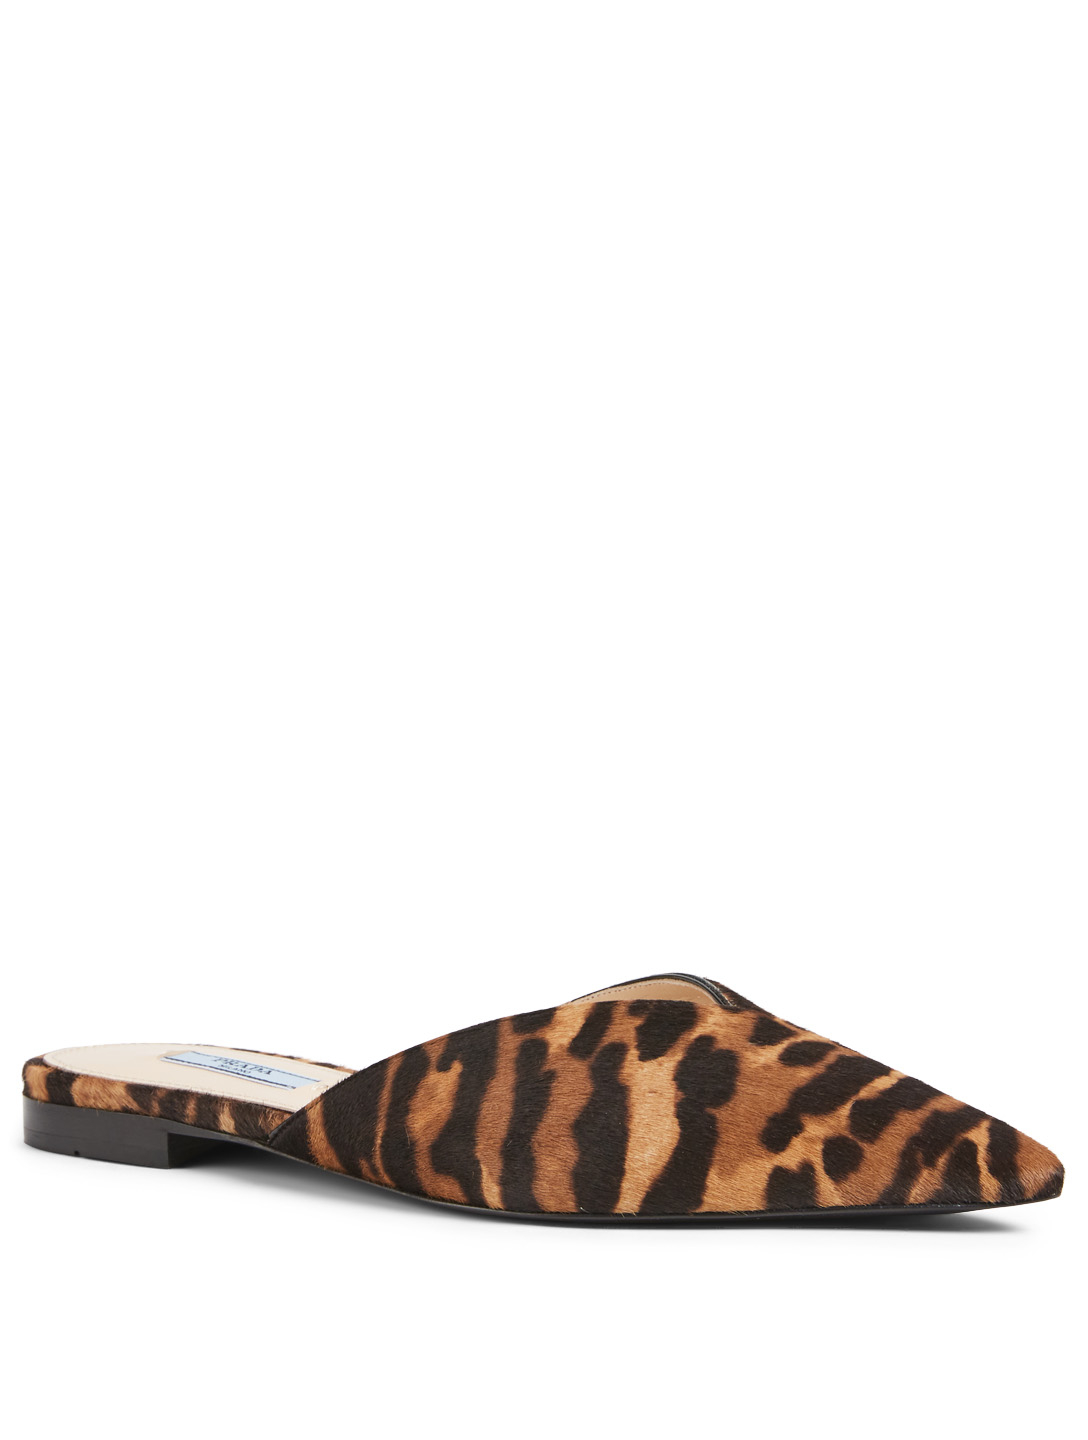 PRADA Calf Hair Flat Mules In Leopard Print Women's Brown